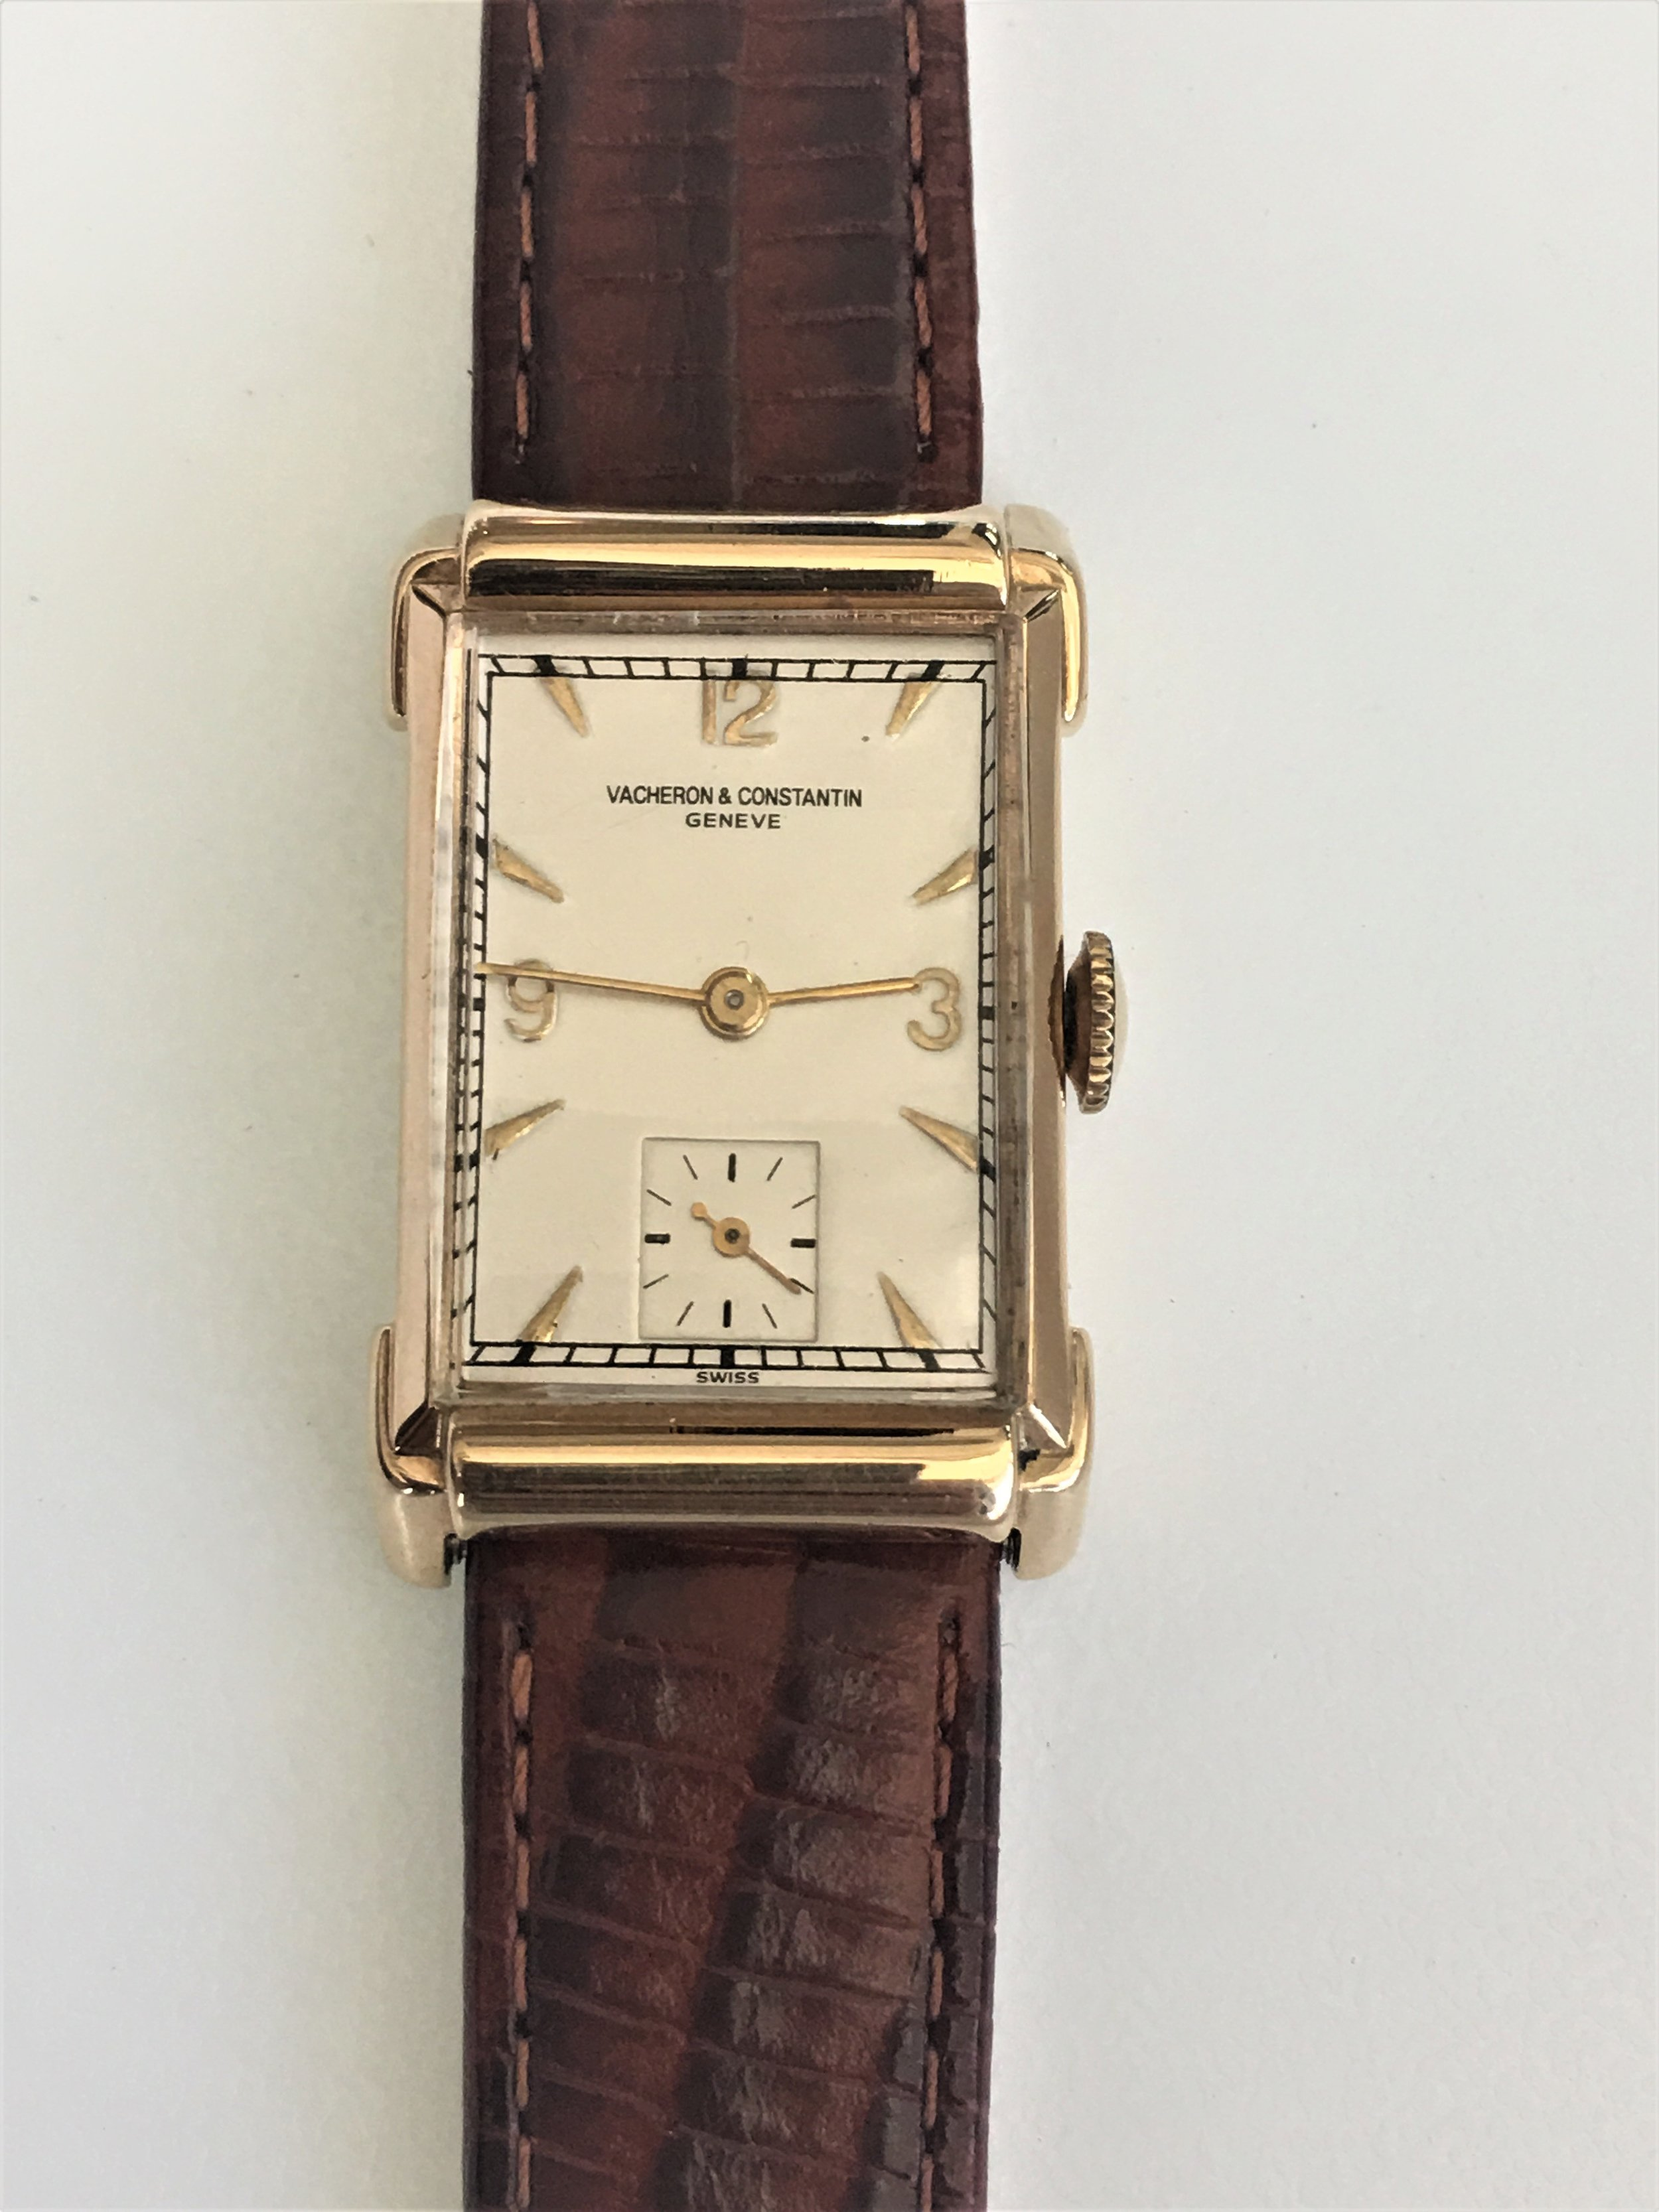 Watch Vacheron & Constantin Geneve . Tampa jewelry store watch repair